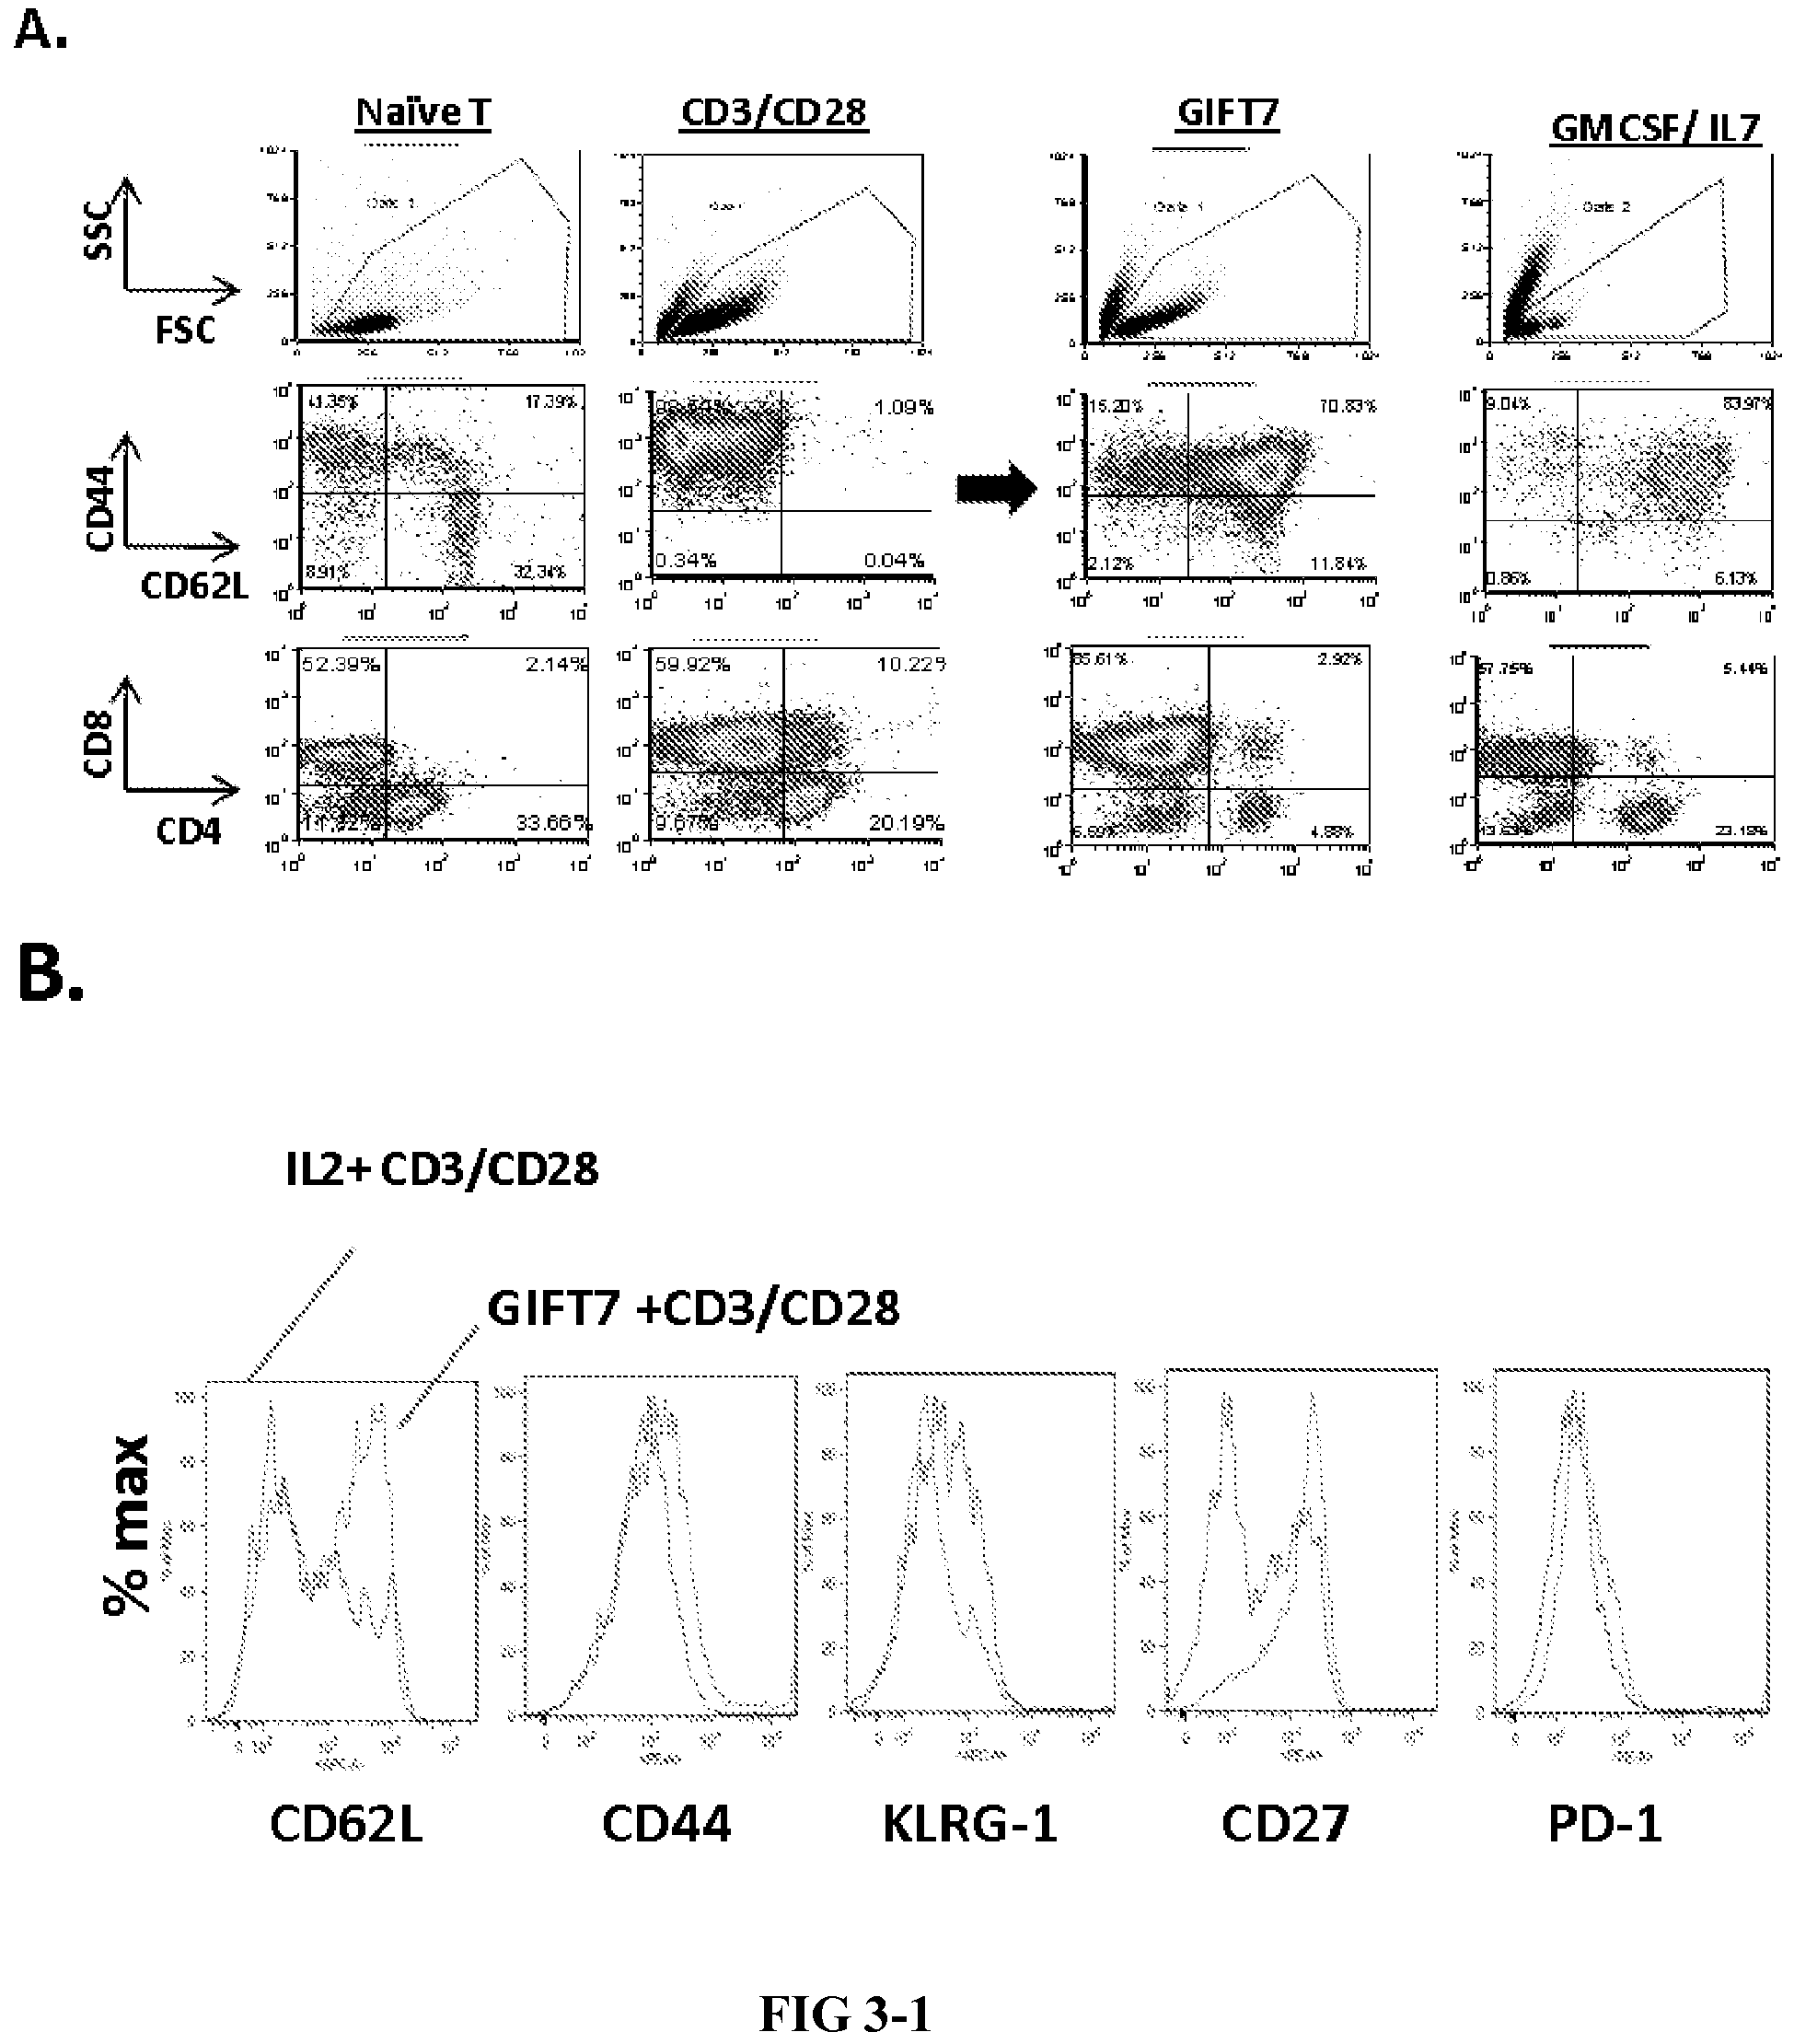 CONJUGATES OF GM-CSF AND IL-7, COMPOSITIONS AND METHODS